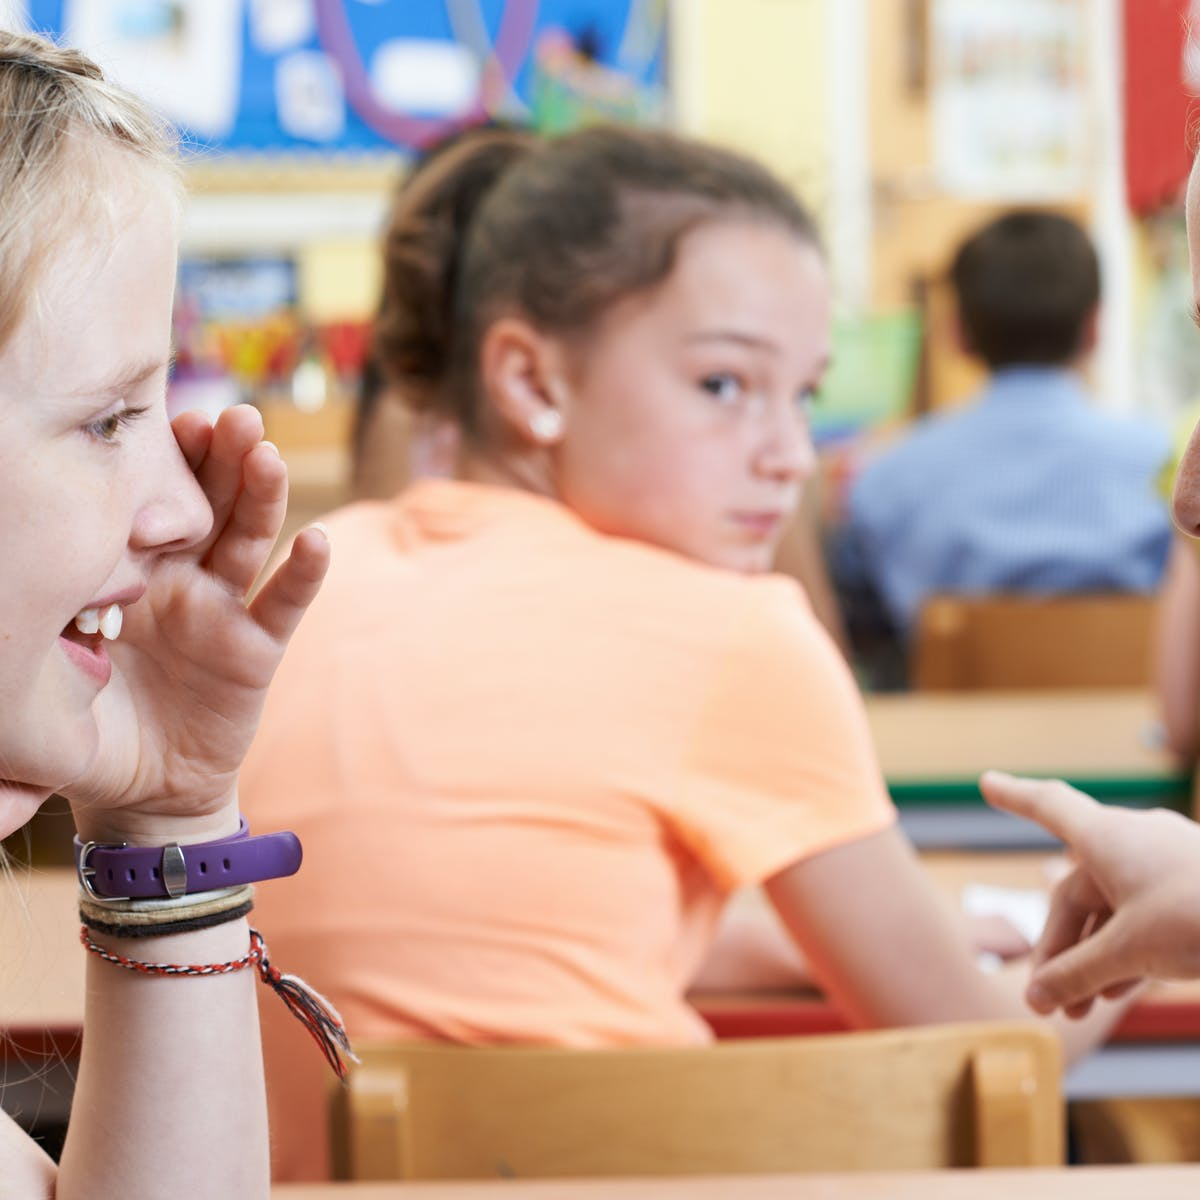 I don't want to be teased' – why bullied children are reluctant to